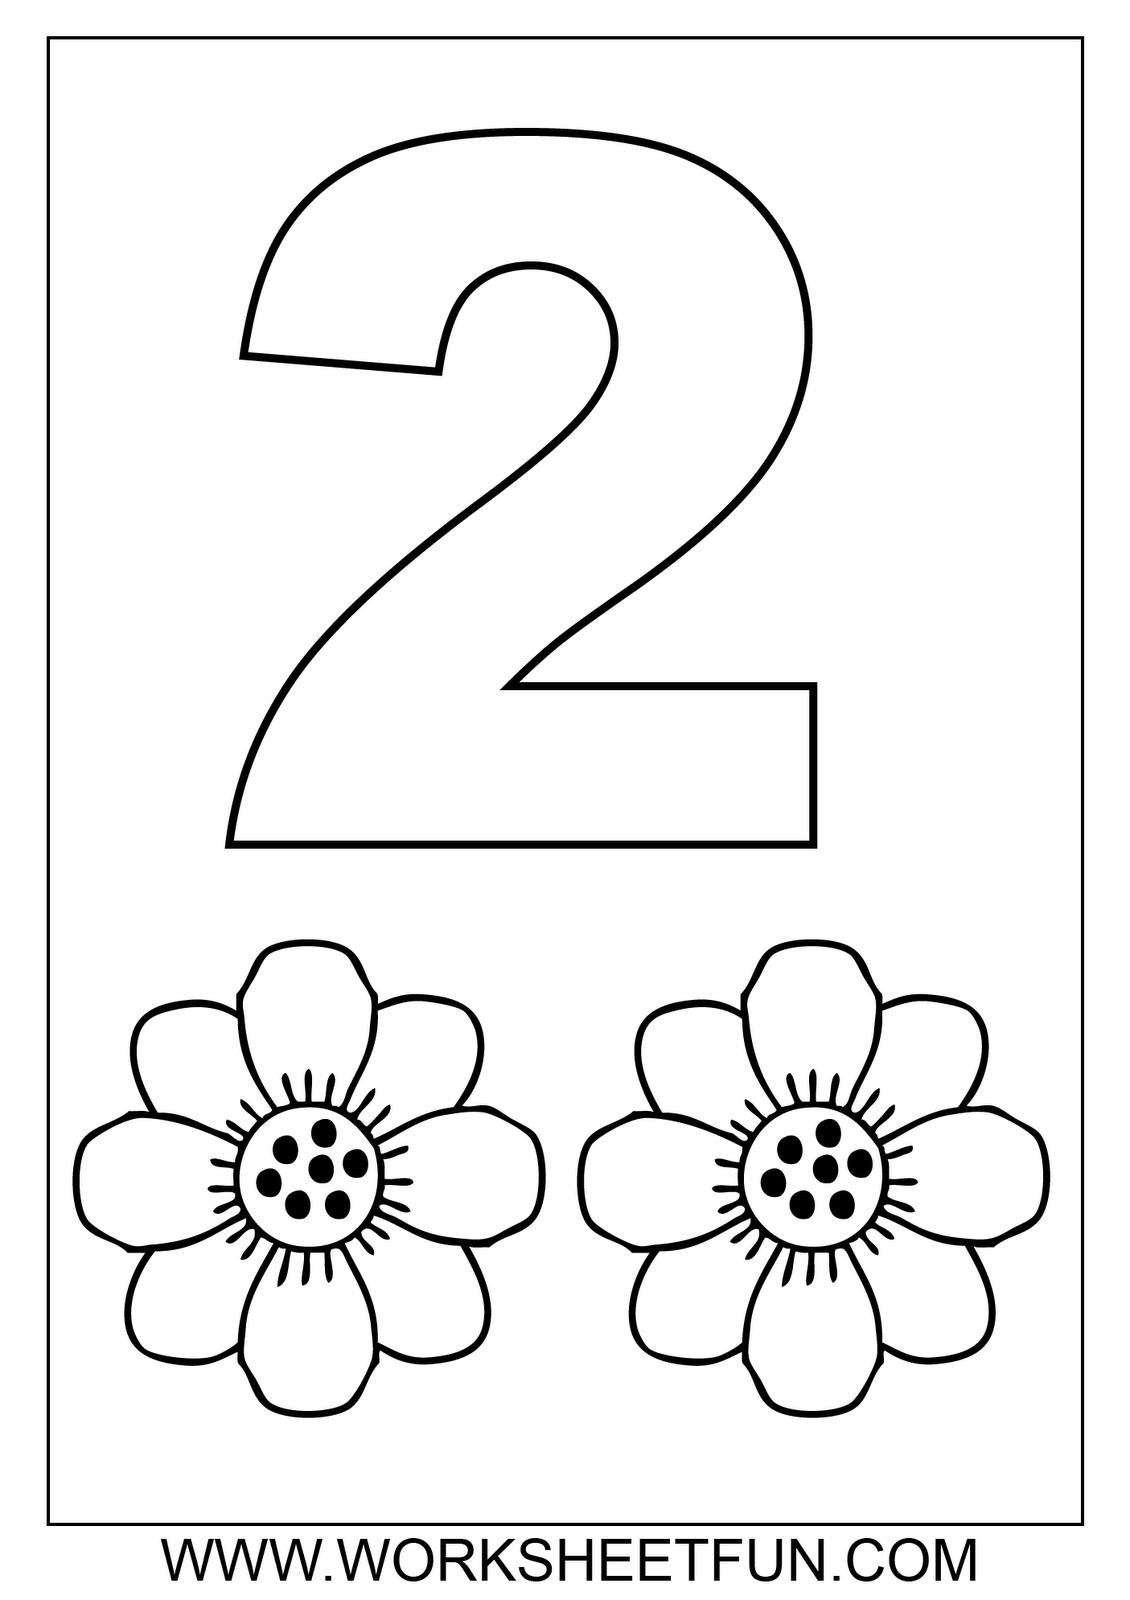 numbers colouring sheets free online printable coloring pages sheets for kids get the latest free numbers colouring sheets images favorite coloring pages - Printable Coloring Book Pages 2